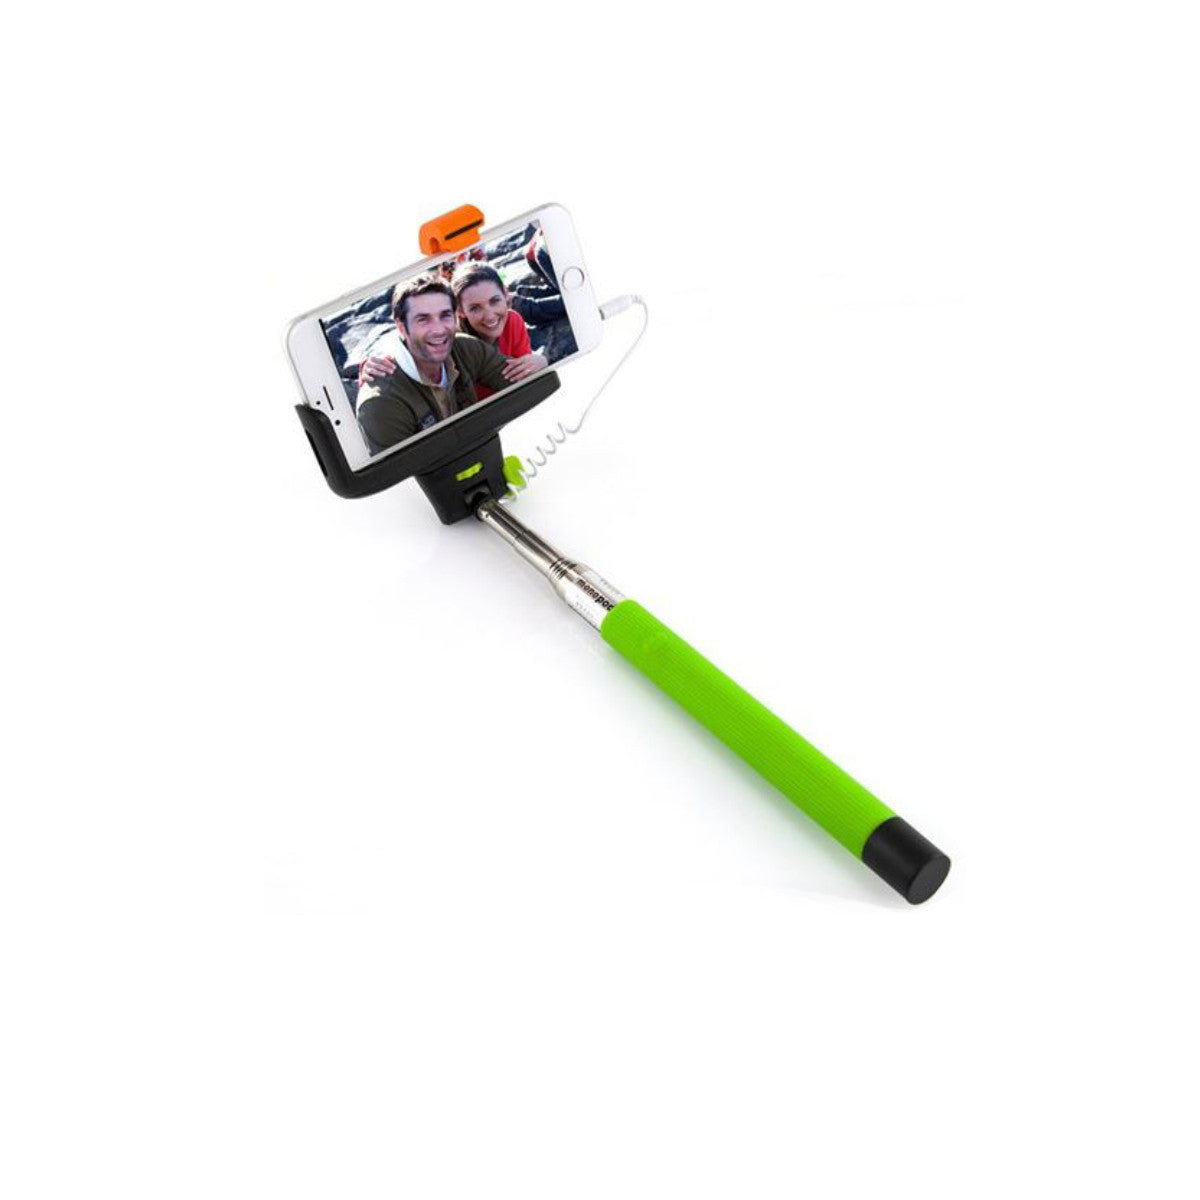 selfie stick monopole with camera button for apple iphone 4 5s 6 plus mobile mob. Black Bedroom Furniture Sets. Home Design Ideas